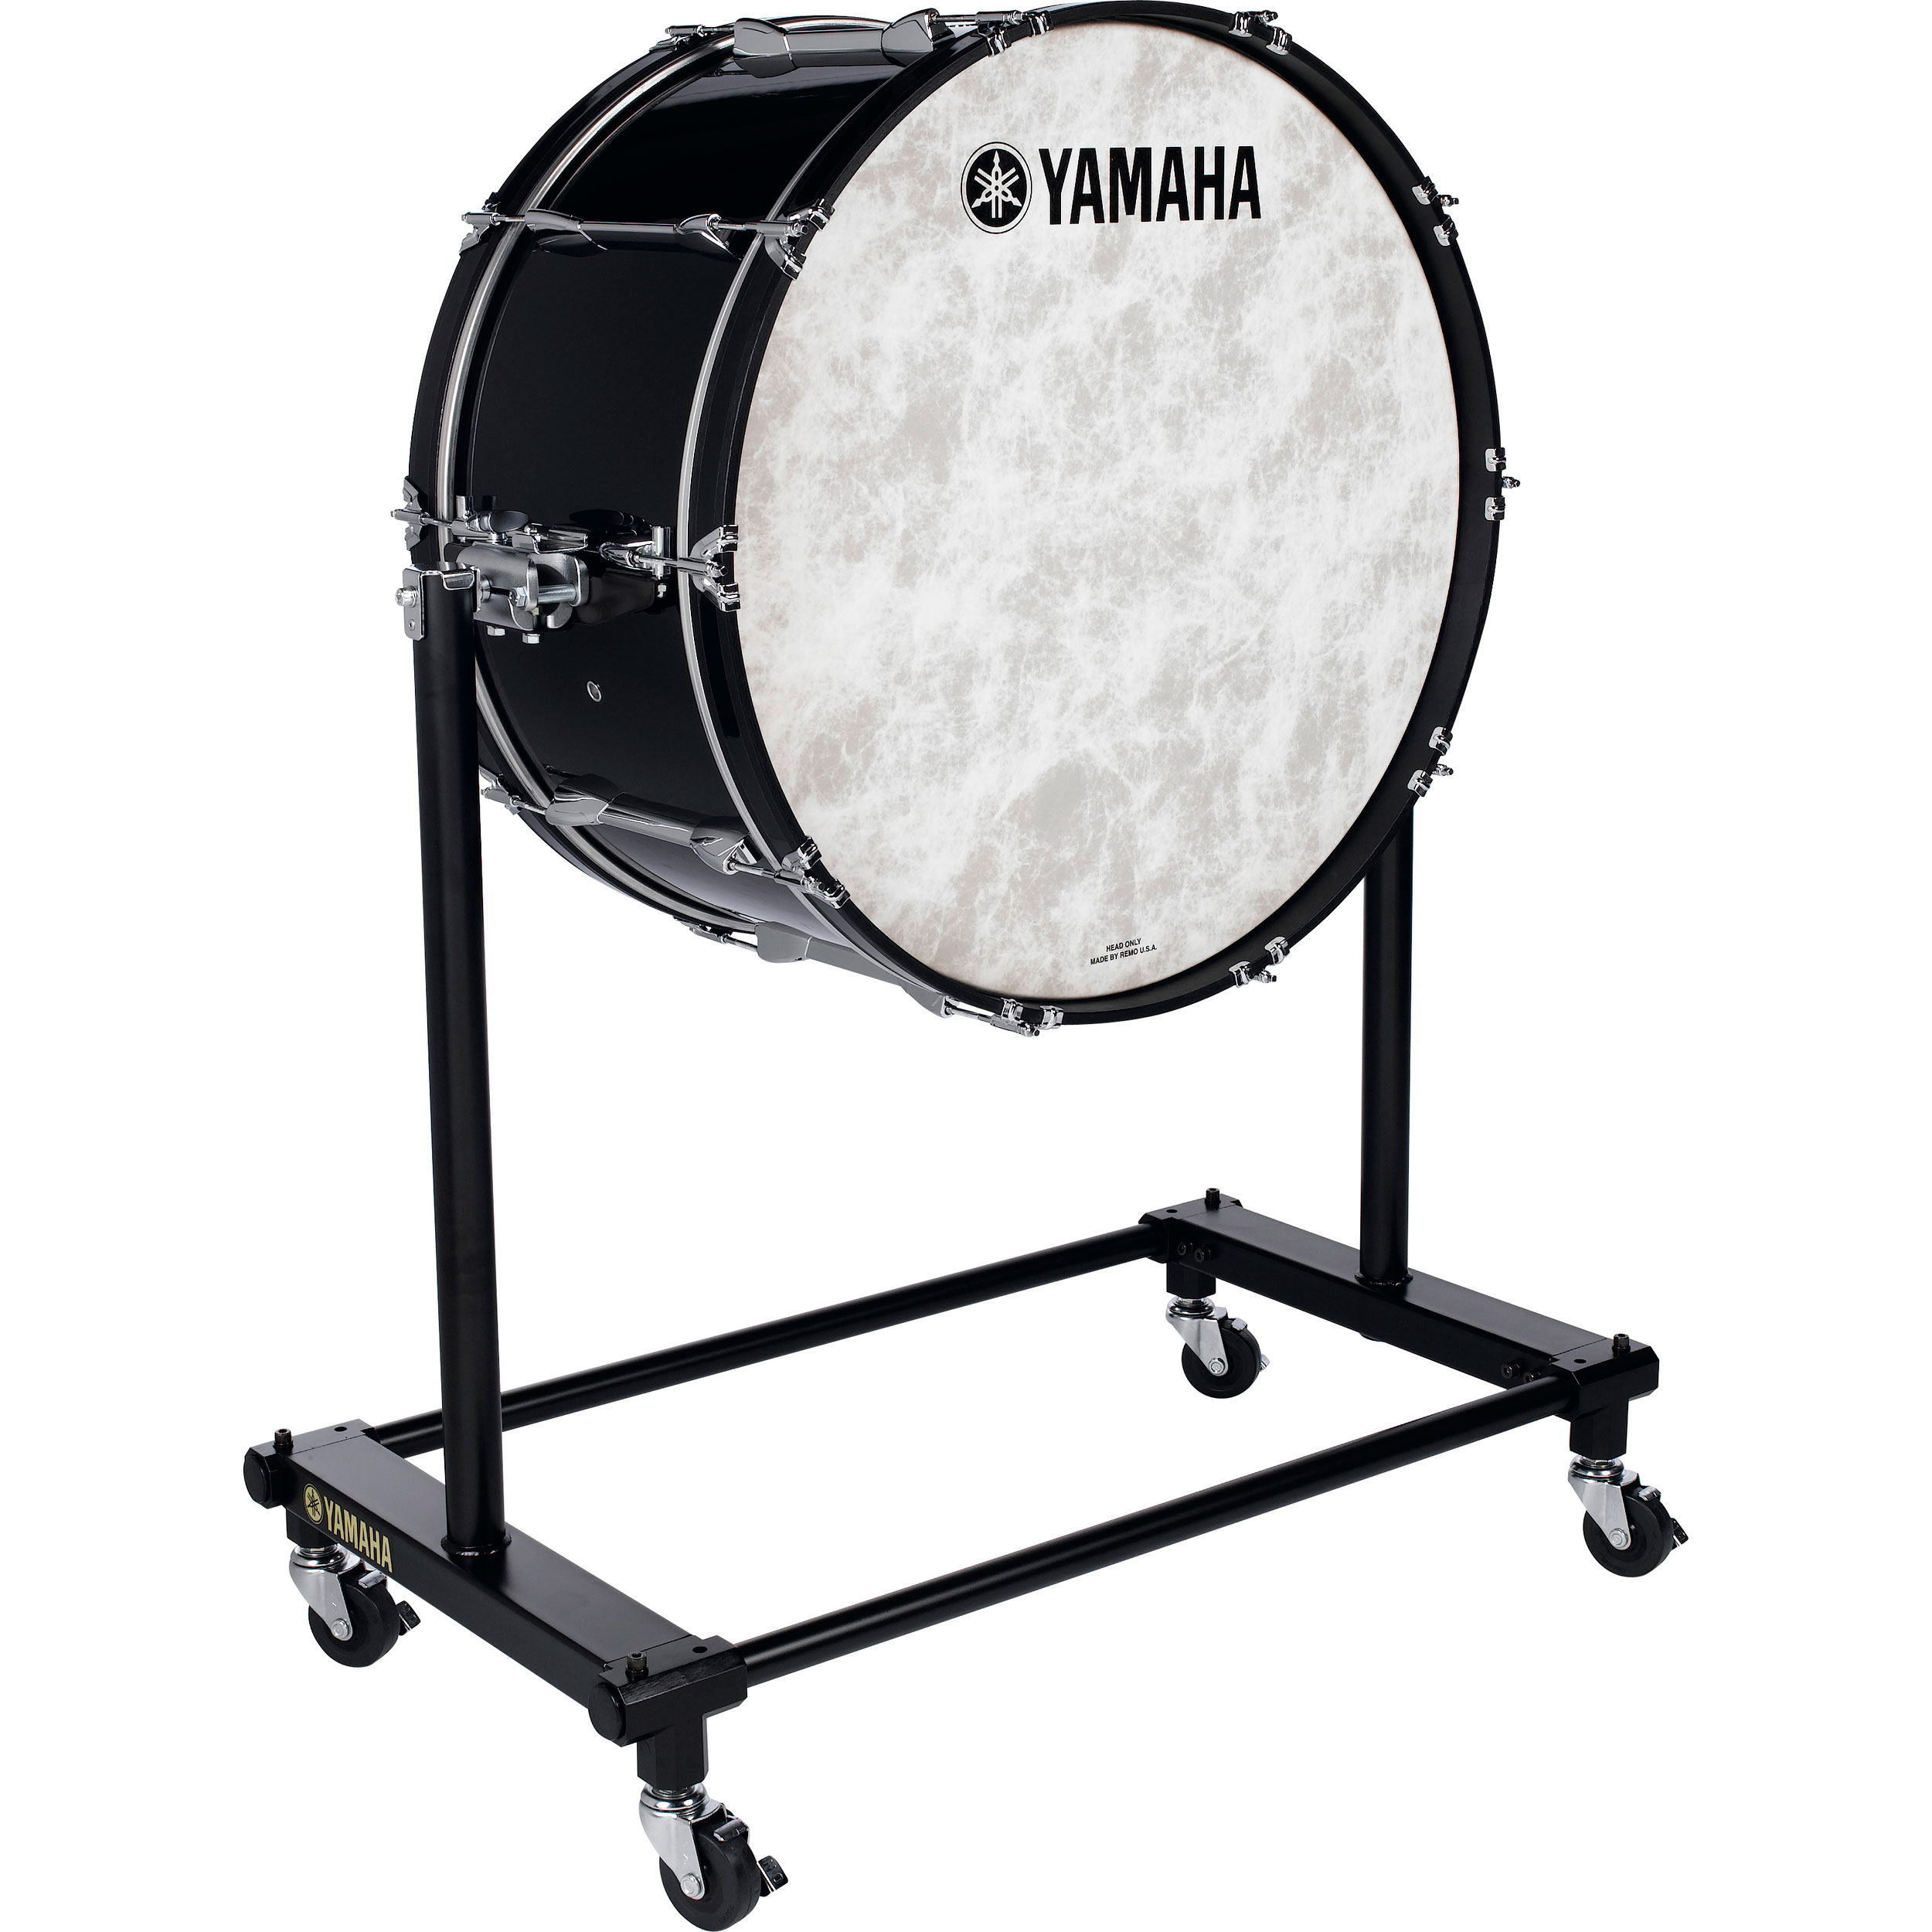 "Yamaha 32"" (Diameter) x 16"" (Deep) Intermediate Bass Drum with BS-7051 Stand and Cover"